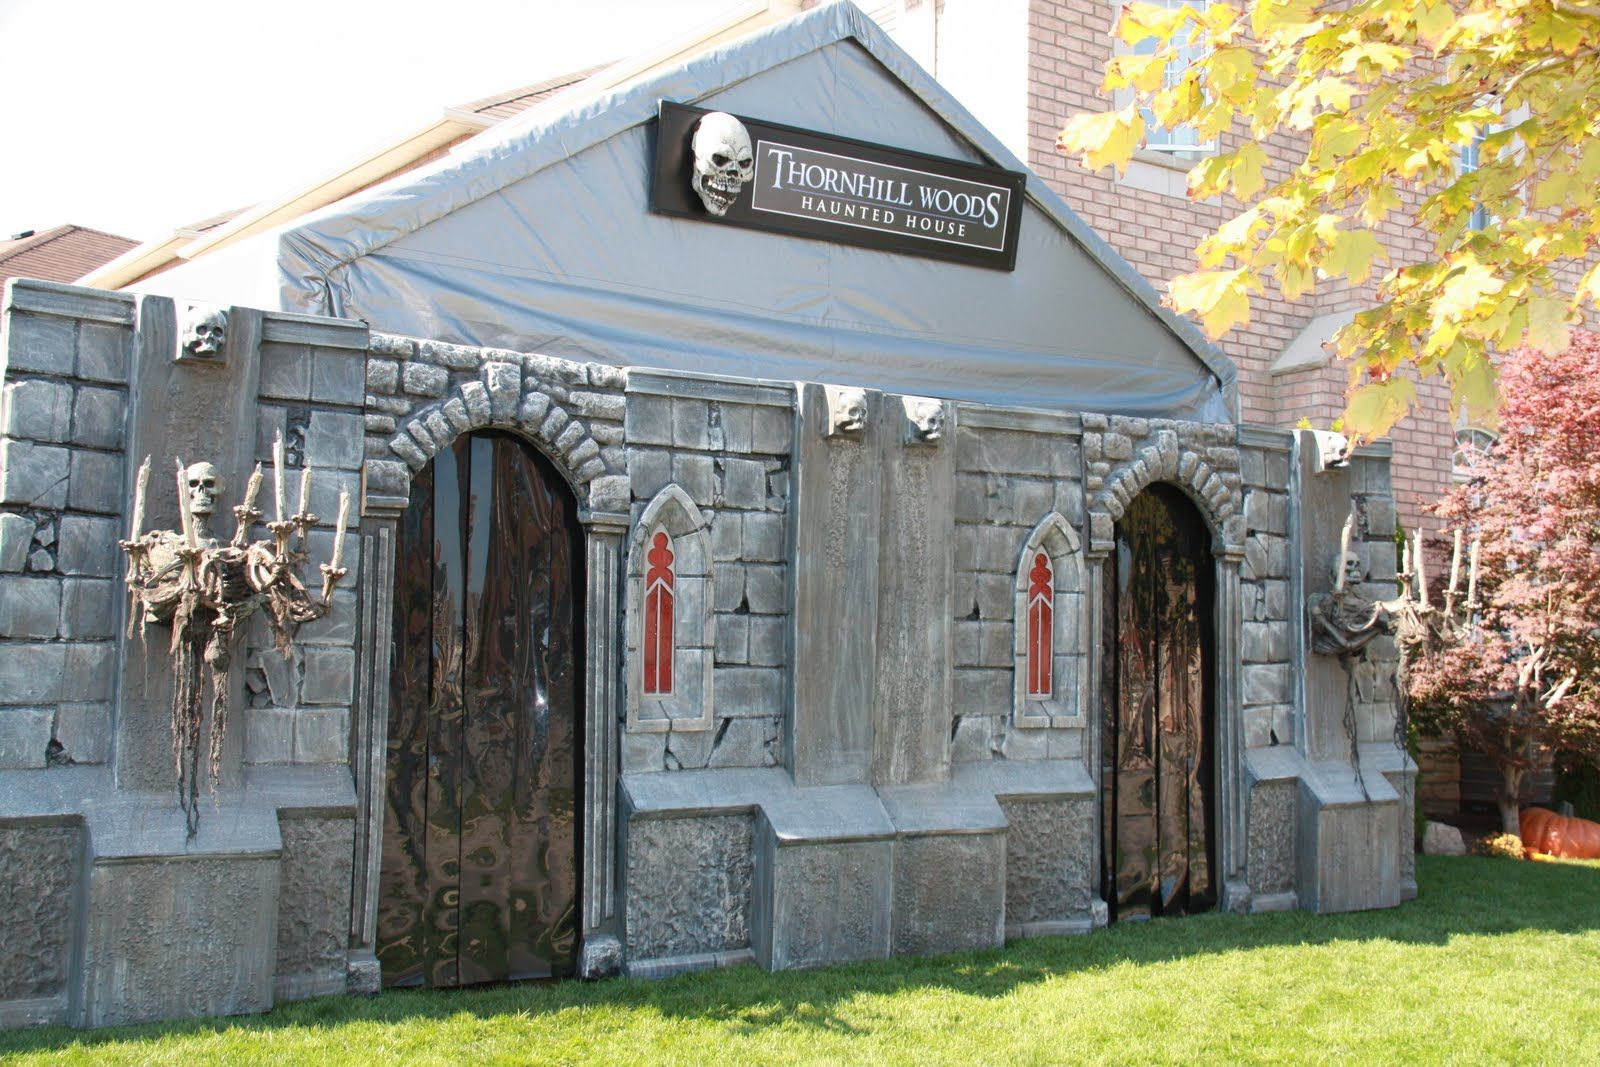 Uncategorized Garage Haunted House image result for entrance to haunted house halloween outside houses